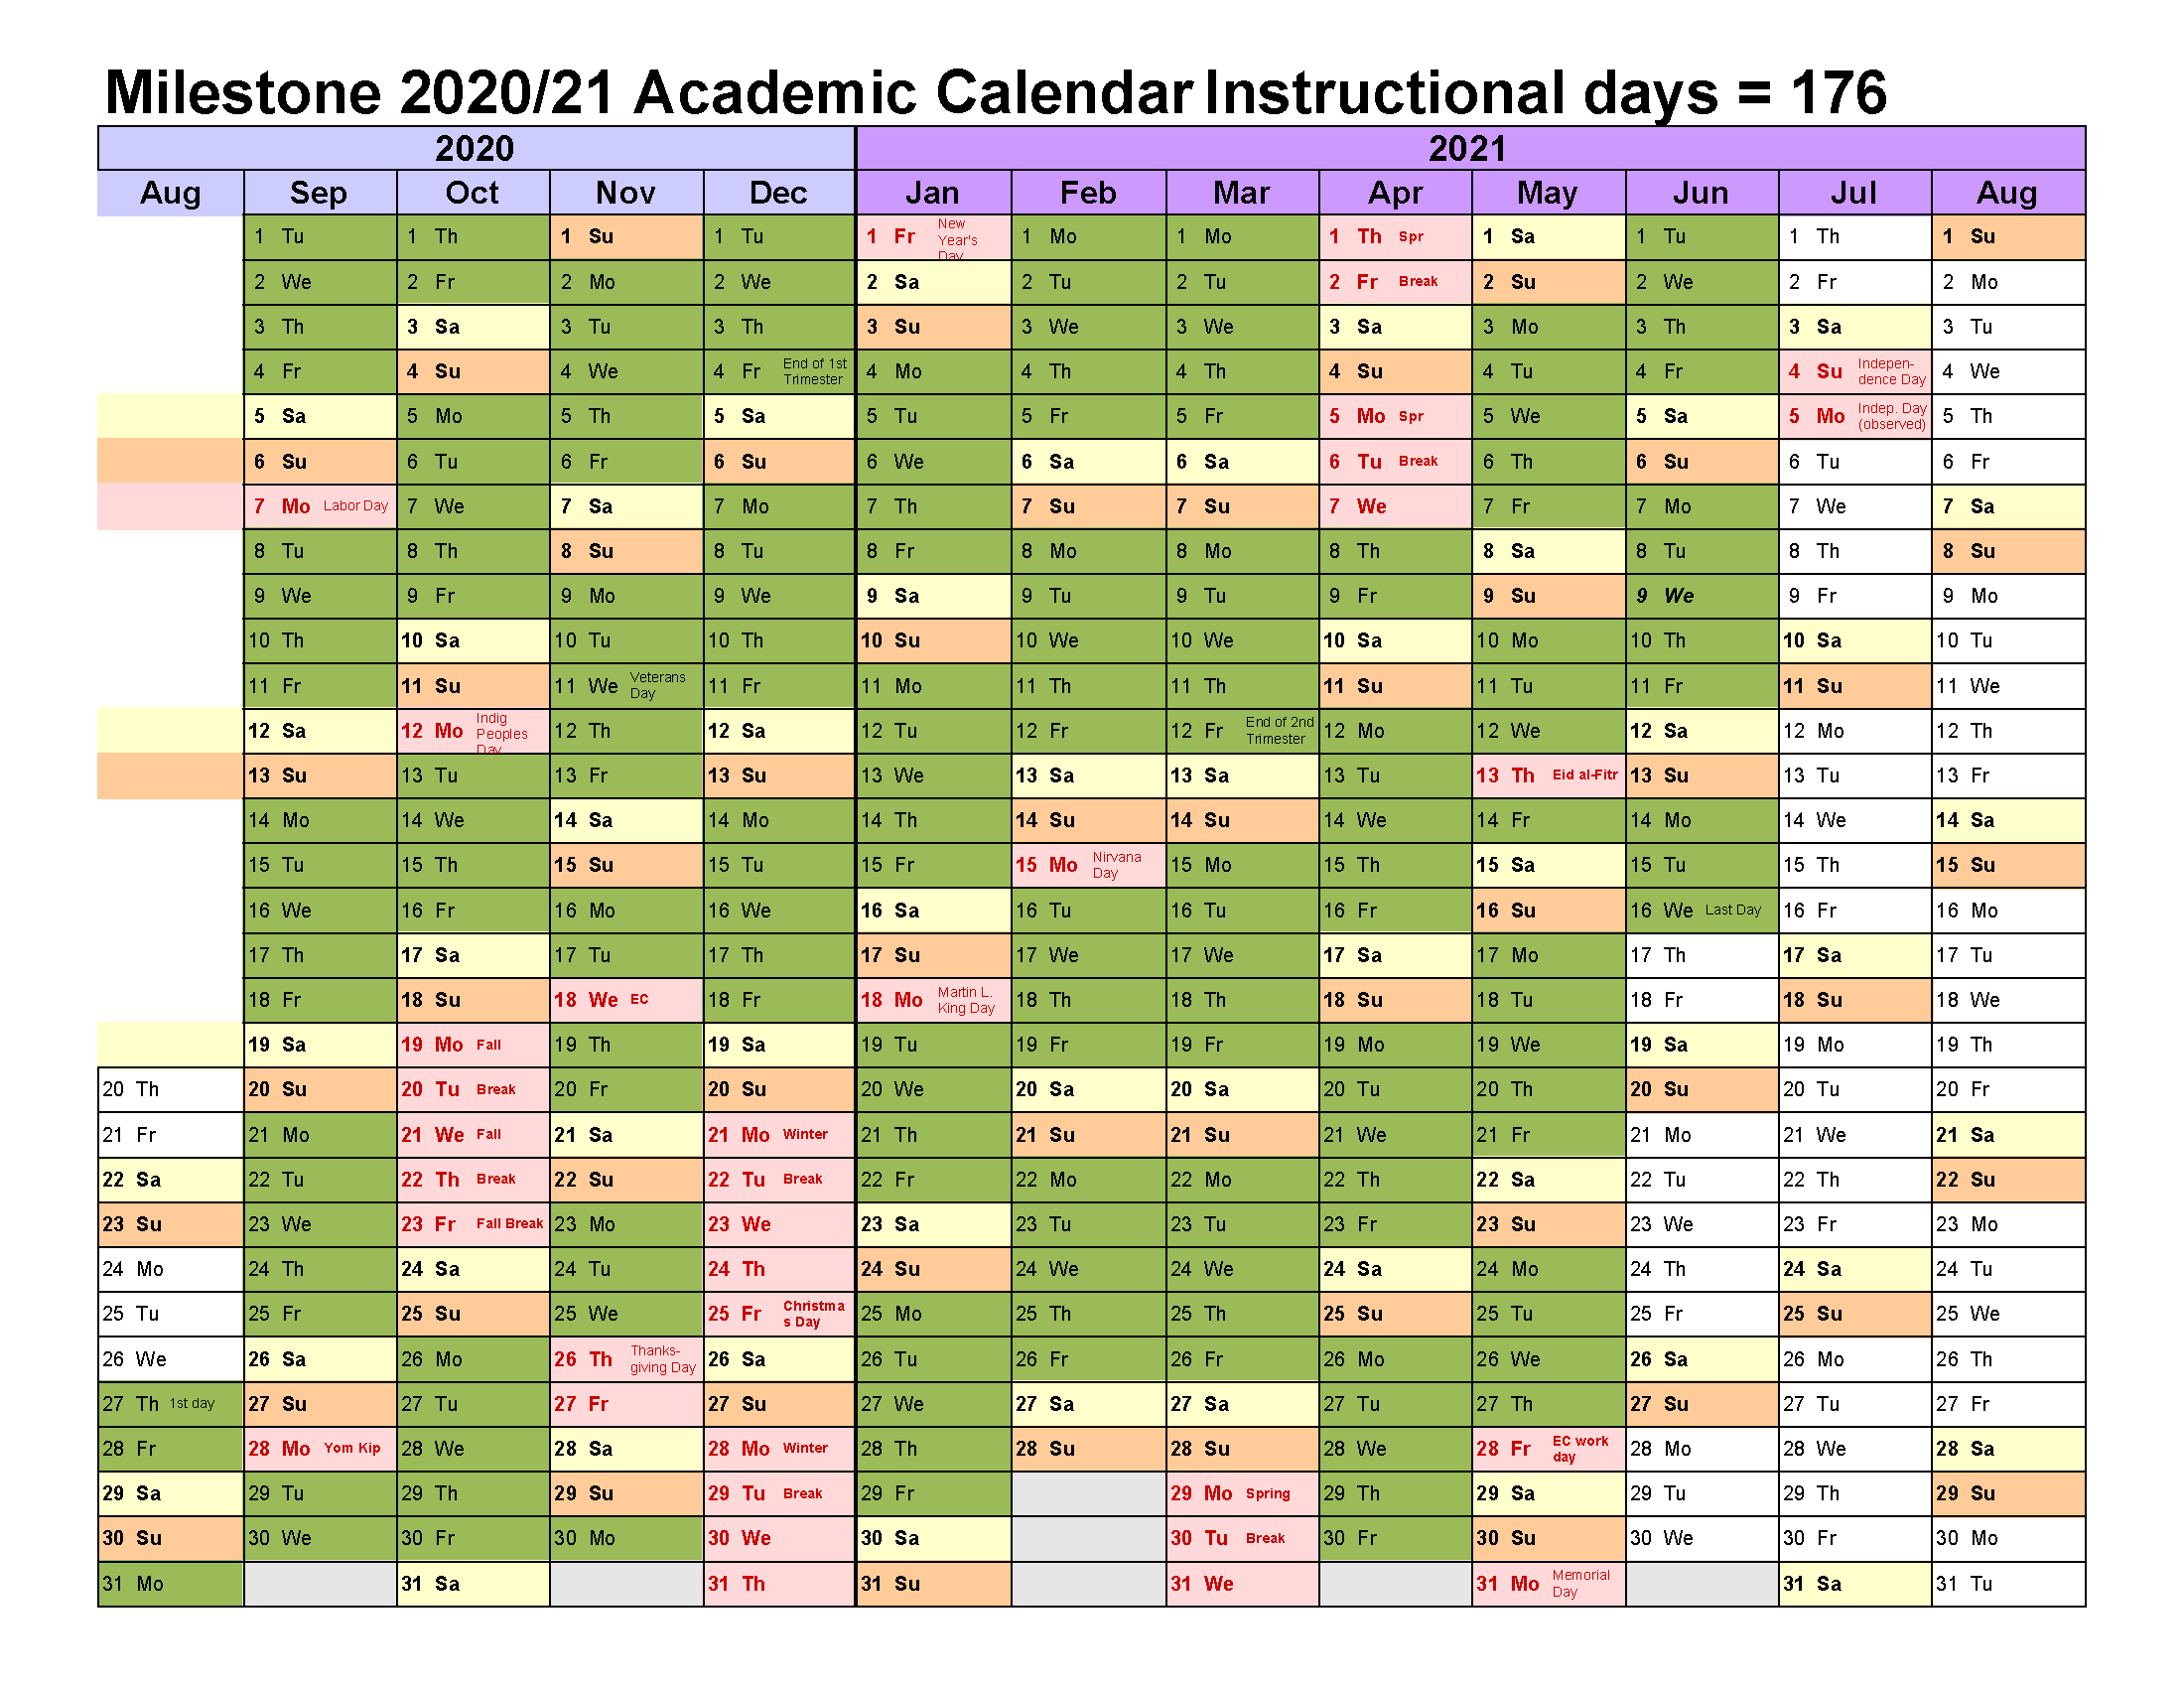 Milestone Democratic School calendar showing August 2020 through August 2021. Link to full calendar available after the image.